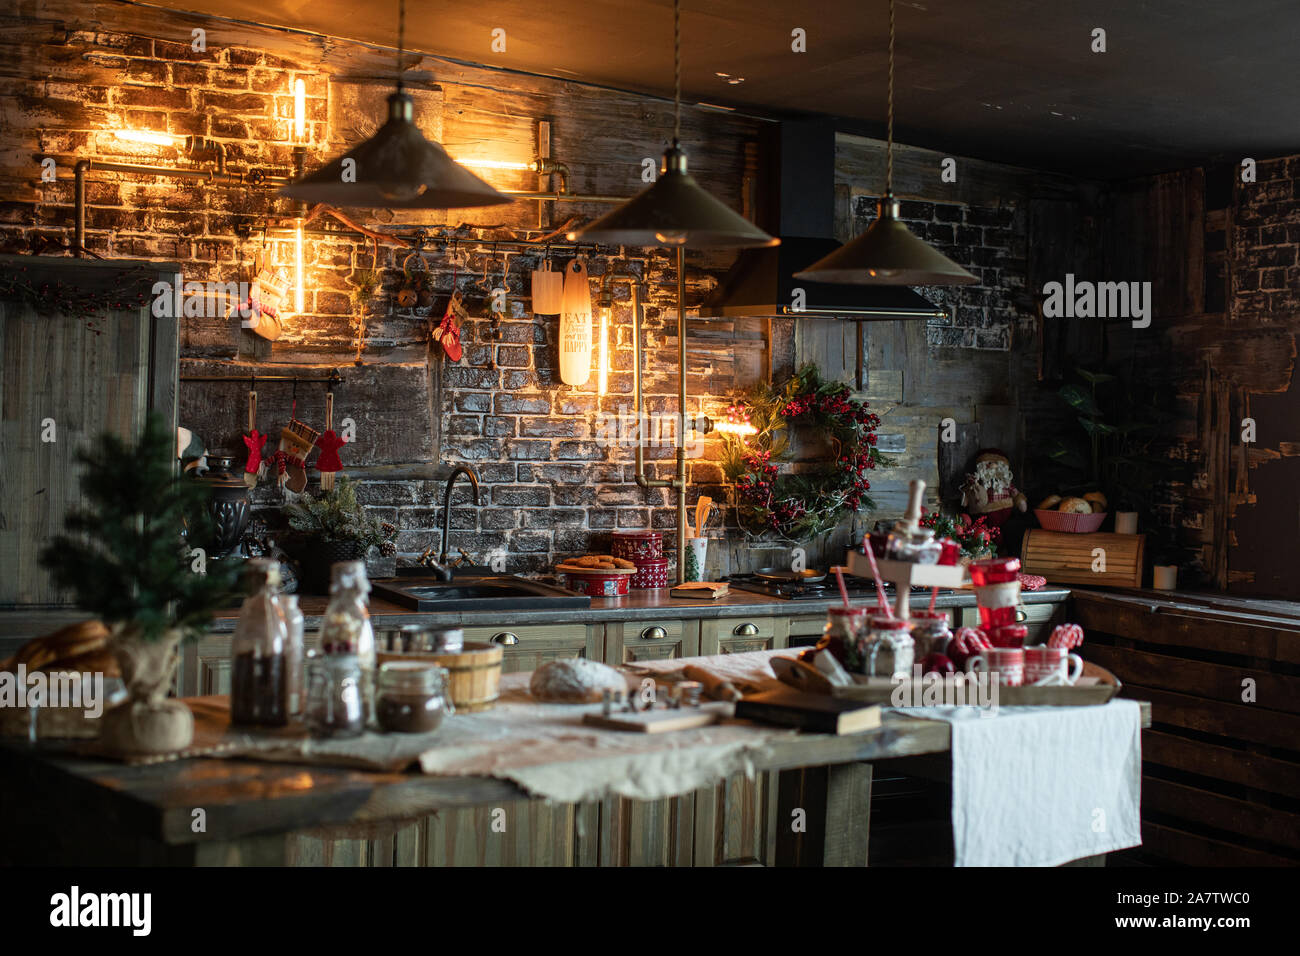 Cozy And Warm Kitchen With Christmas Decor Happy New Year Stock Photo Alamy